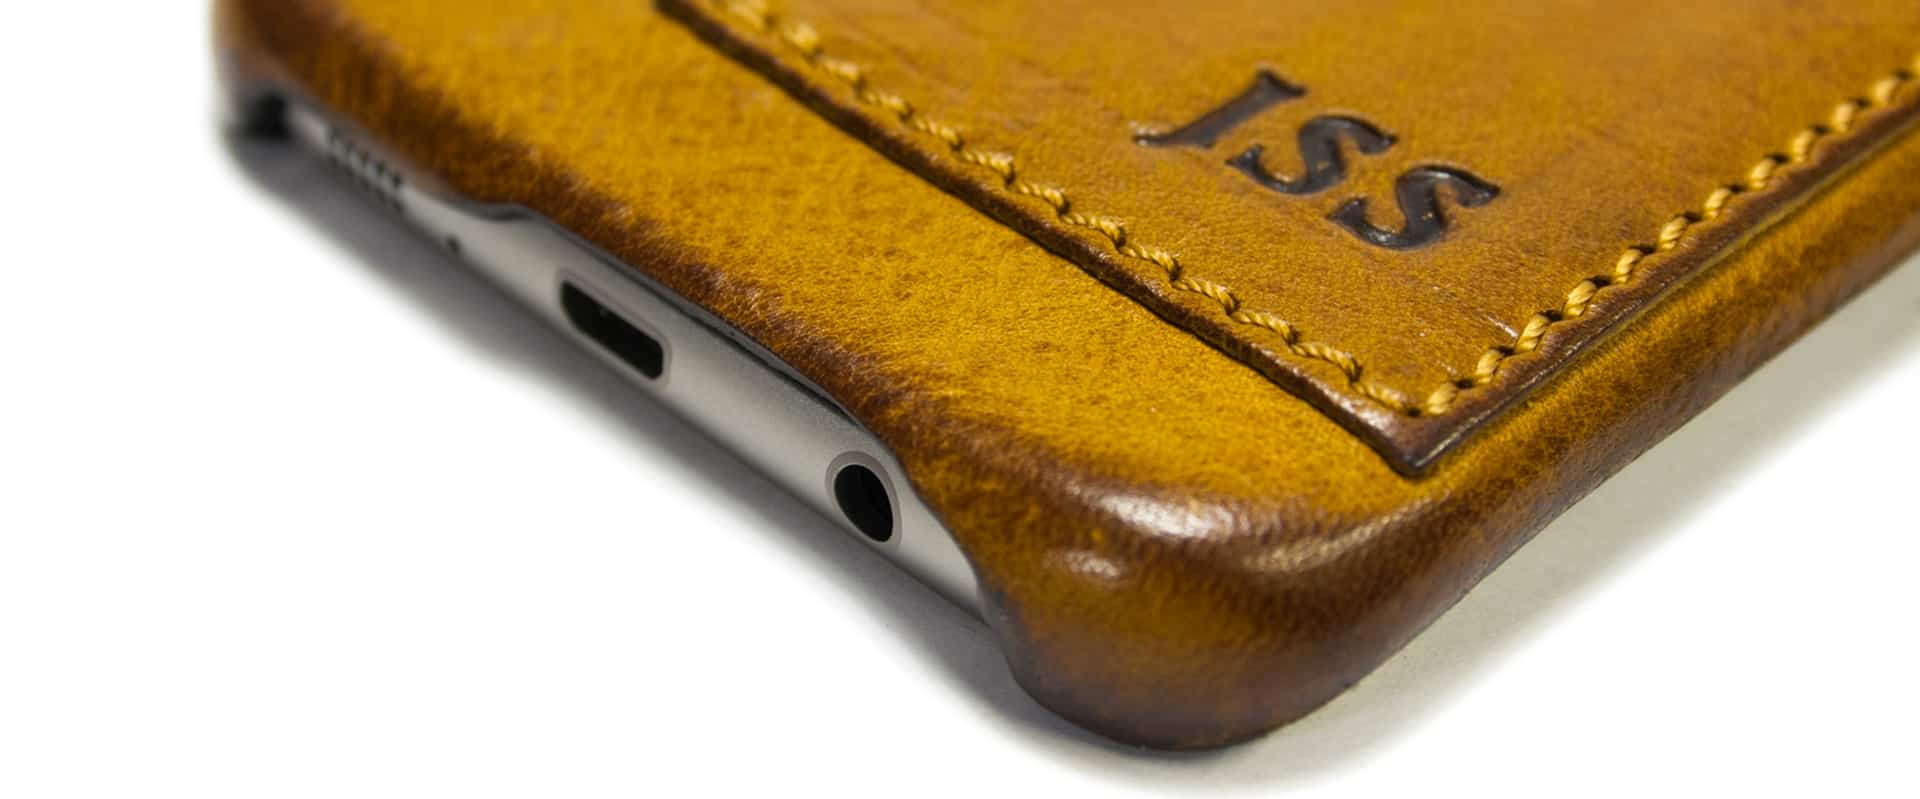 Samsung Galaxy S7 EDGE Leather Case, Camel, Detail